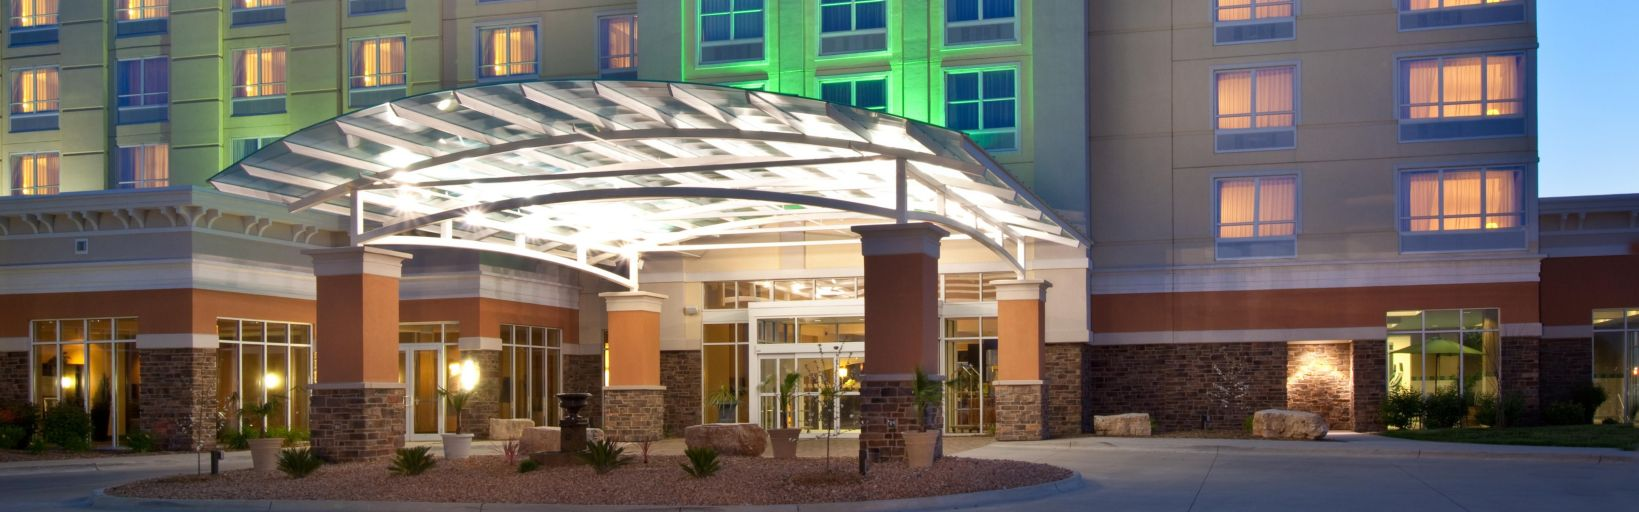 Holiday Inn Hotel Suites West Des Moines Jordan Creek Hotel By Ihg